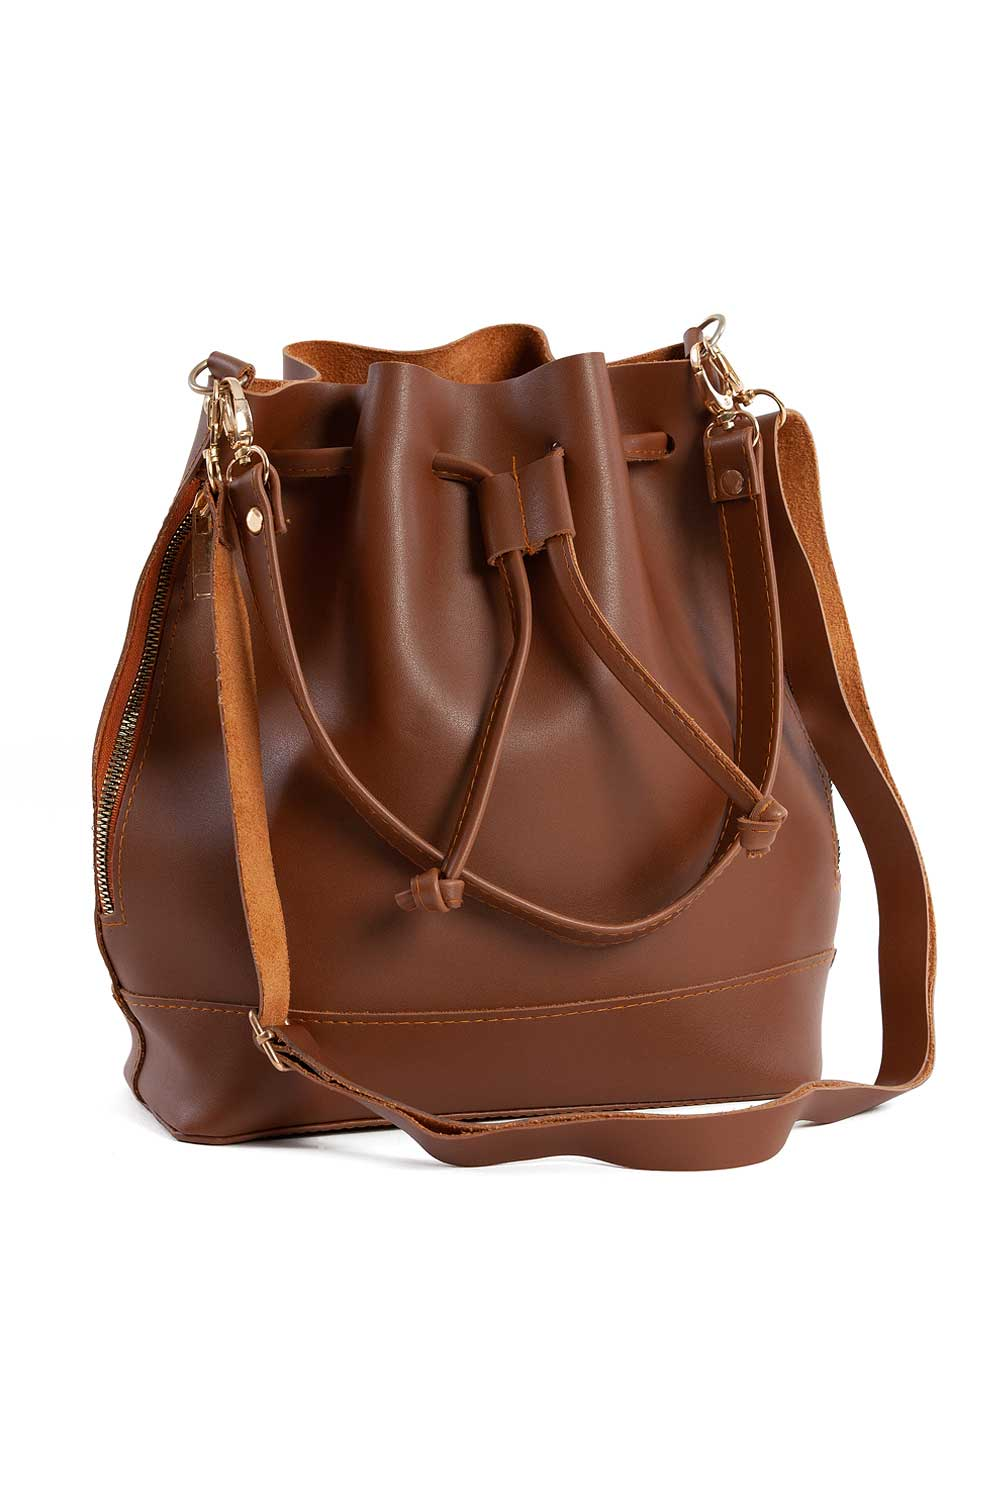 MIZALLE Drawstring Hand And Shoulder Bag (Light Brown) (1)